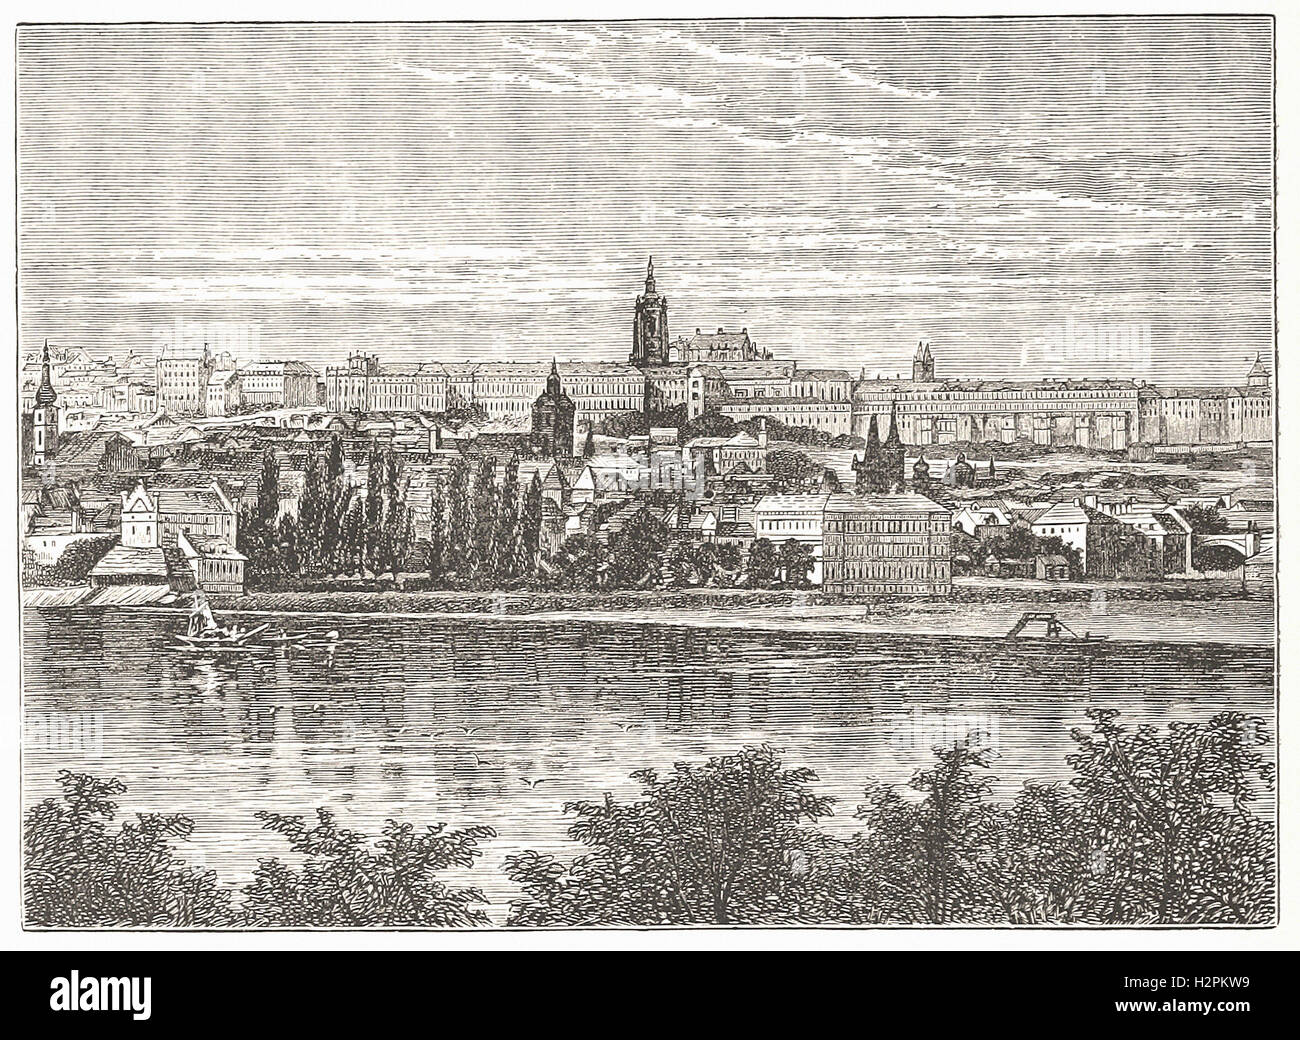 PALACE OF THE BOHEMIAN KINGS, AND CATHEDRAL OF HRADSCHIN, PRAGUE - from 'Cassell's Illustrated Universal - Stock Image